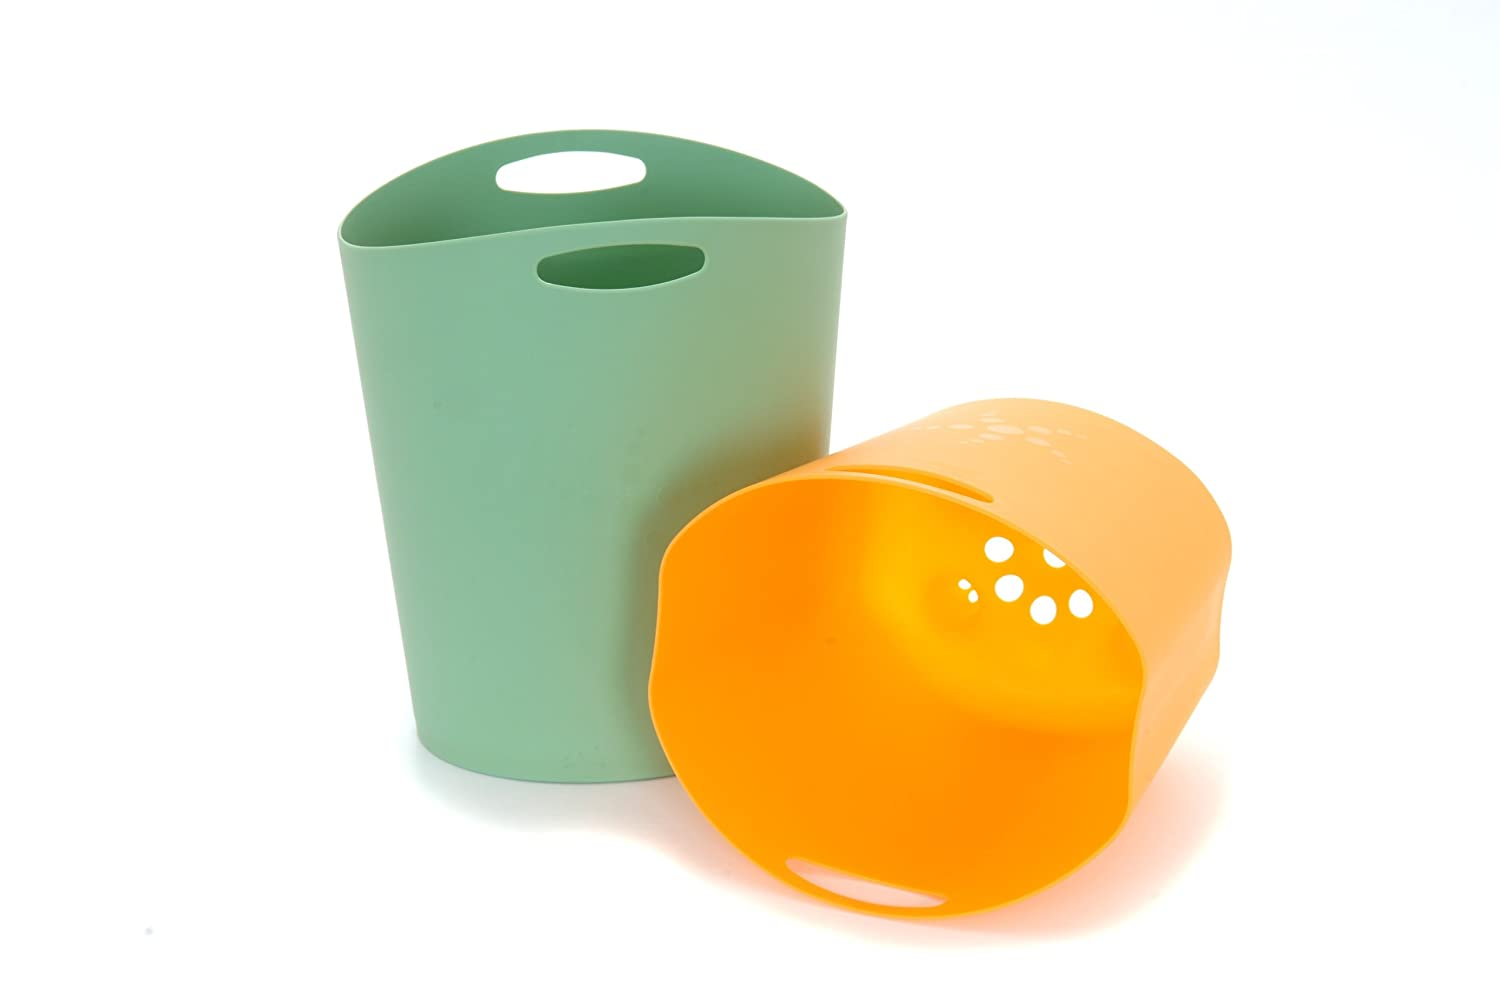 Amazon.com : Mebby Bath Toy Storage, Orange/Green (Discontinued by ...